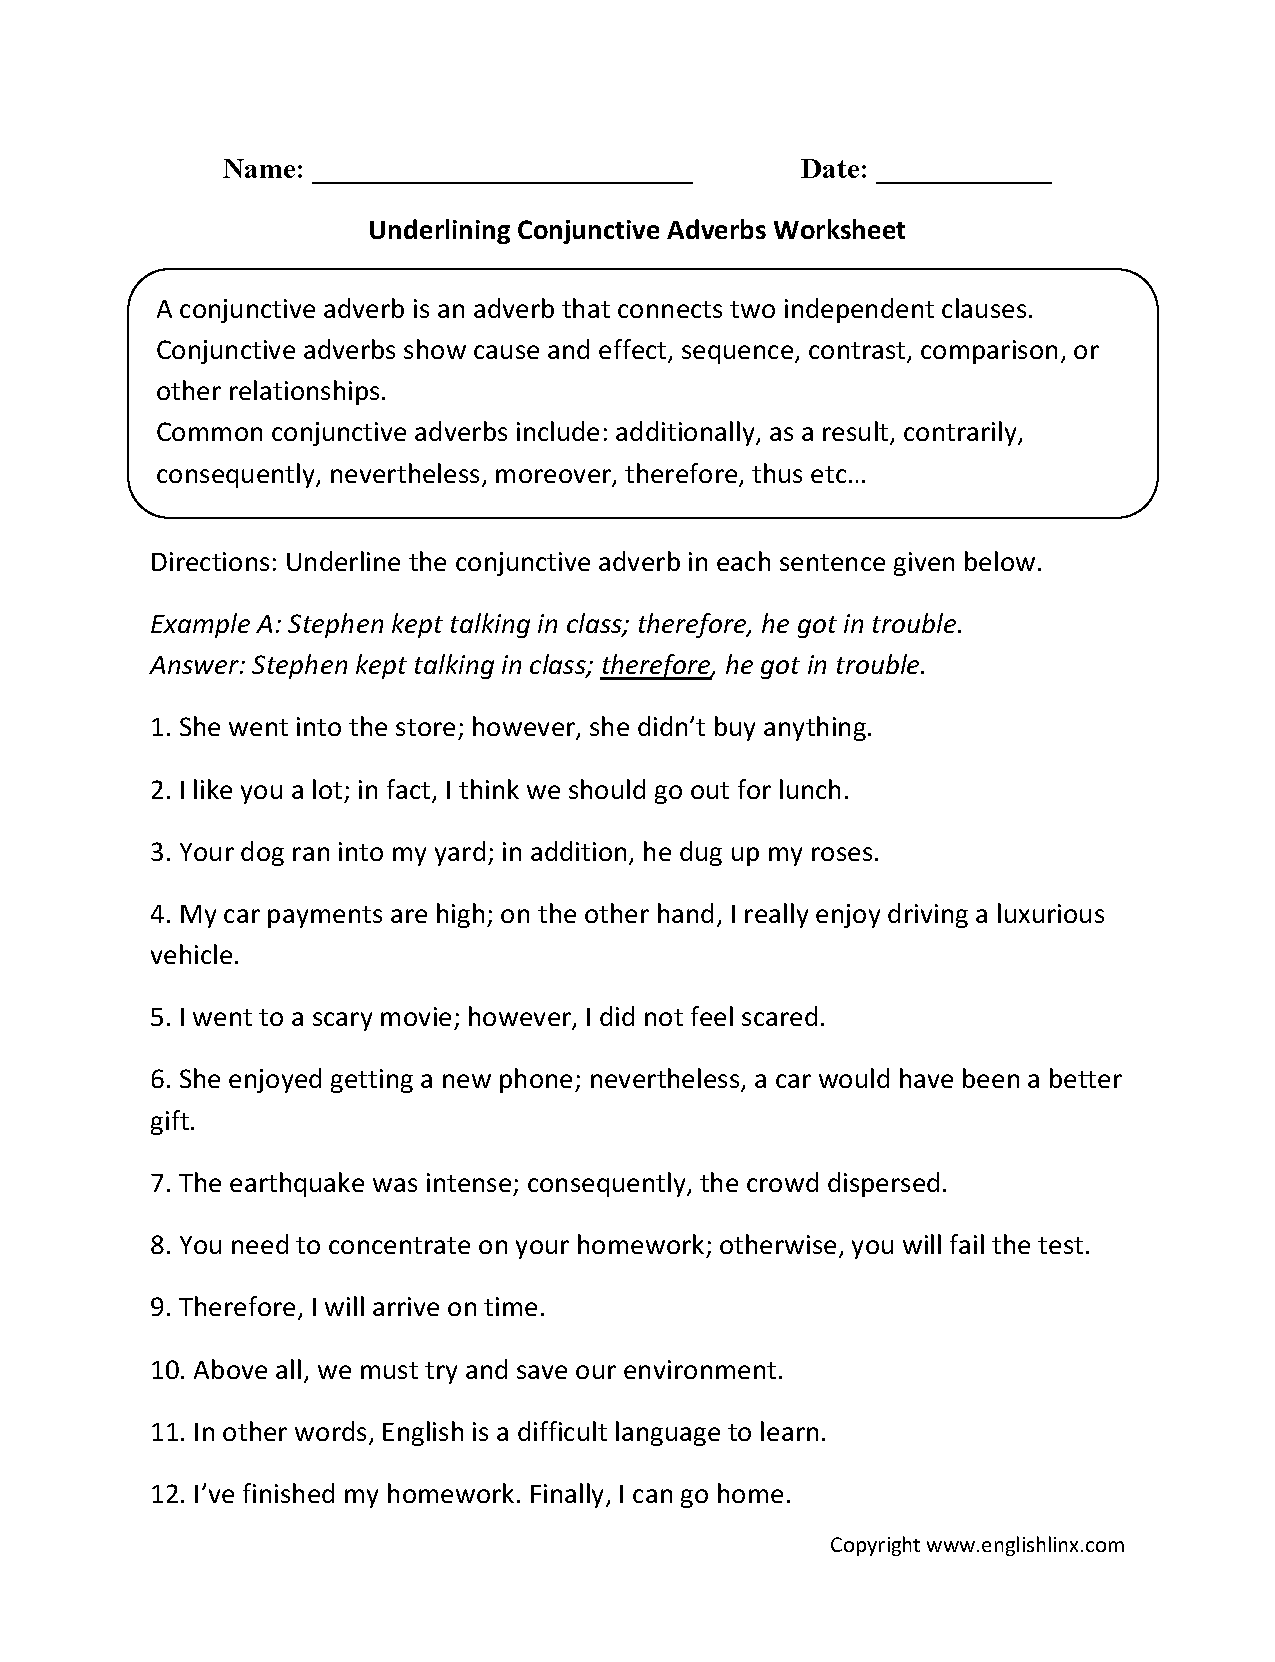 Weirdmailus  Unique Englishlinxcom  Conjunctions Worksheets With Outstanding Worksheet With Comely Multiplication Facts Worksheets Generator Also Pre Kindergarten Worksheets Free In Addition Create Math Worksheet And Kumon Multiplication Worksheets As Well As Worksheet Angles Of Depression And Elevation Answers Additionally Compound Machines Worksheet From Englishlinxcom With Weirdmailus  Outstanding Englishlinxcom  Conjunctions Worksheets With Comely Worksheet And Unique Multiplication Facts Worksheets Generator Also Pre Kindergarten Worksheets Free In Addition Create Math Worksheet From Englishlinxcom